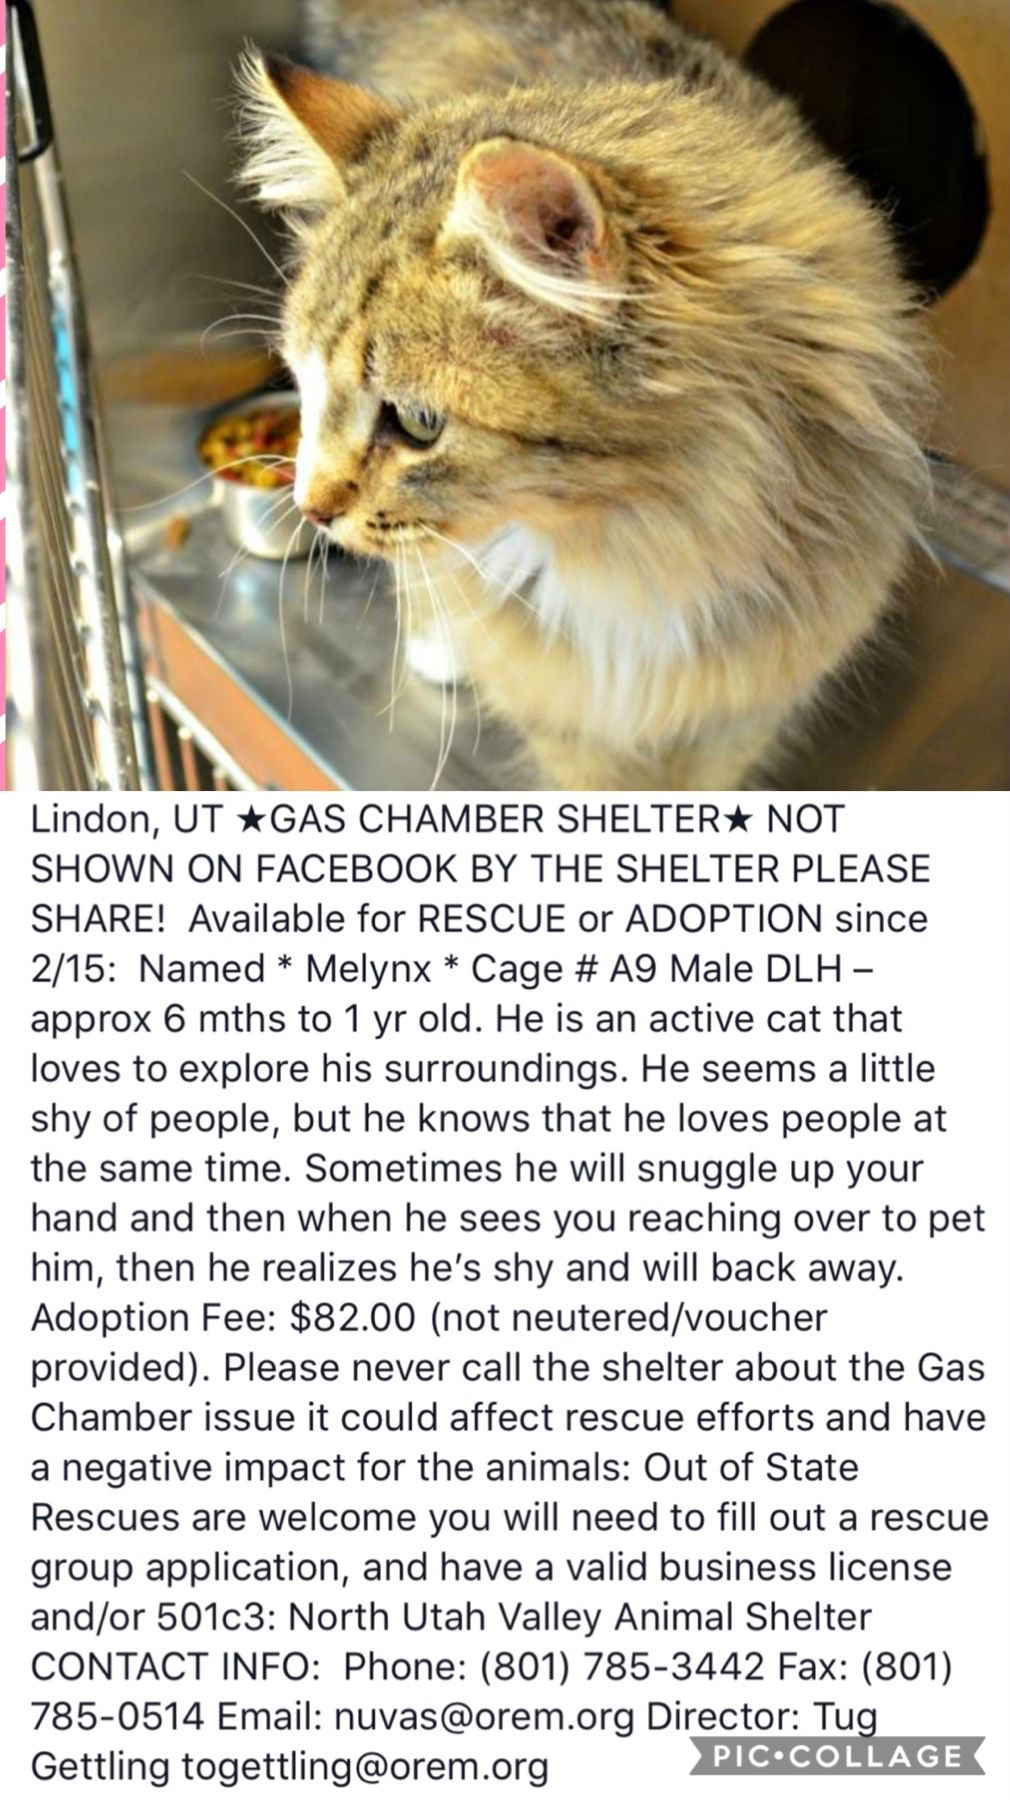 Pin By Amcurious Nj On Animal Protection 5 With Images Cats Tabby Cat Cat Adoption